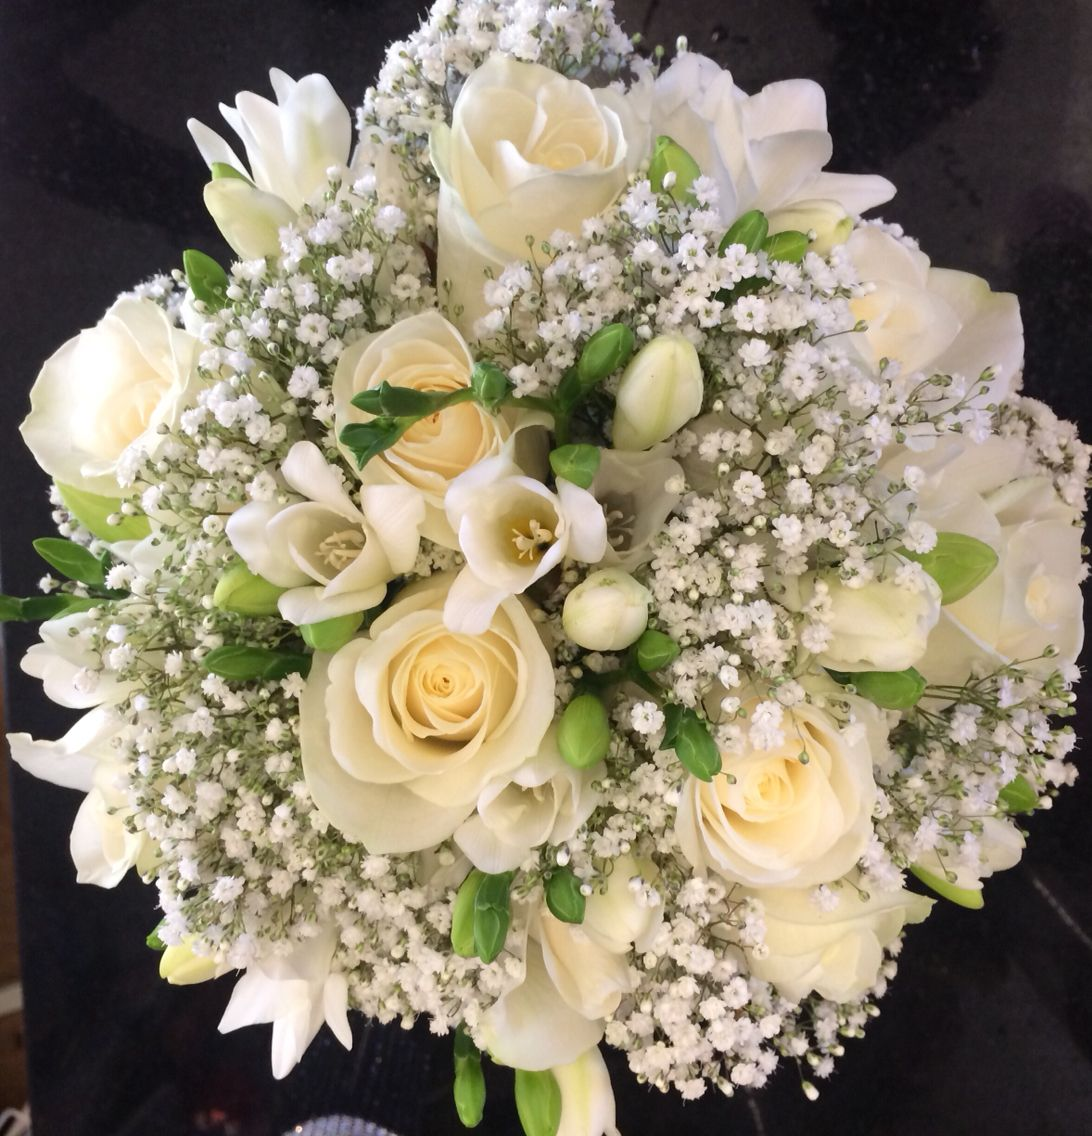 Freesia Roses And Gypsophila Cream And Green Bouquet Baby S Breath And Roses Wedding Flower Bouquet Bridal B Dekoration Hochzeit Brautstrauss Brautstrauss Rosen